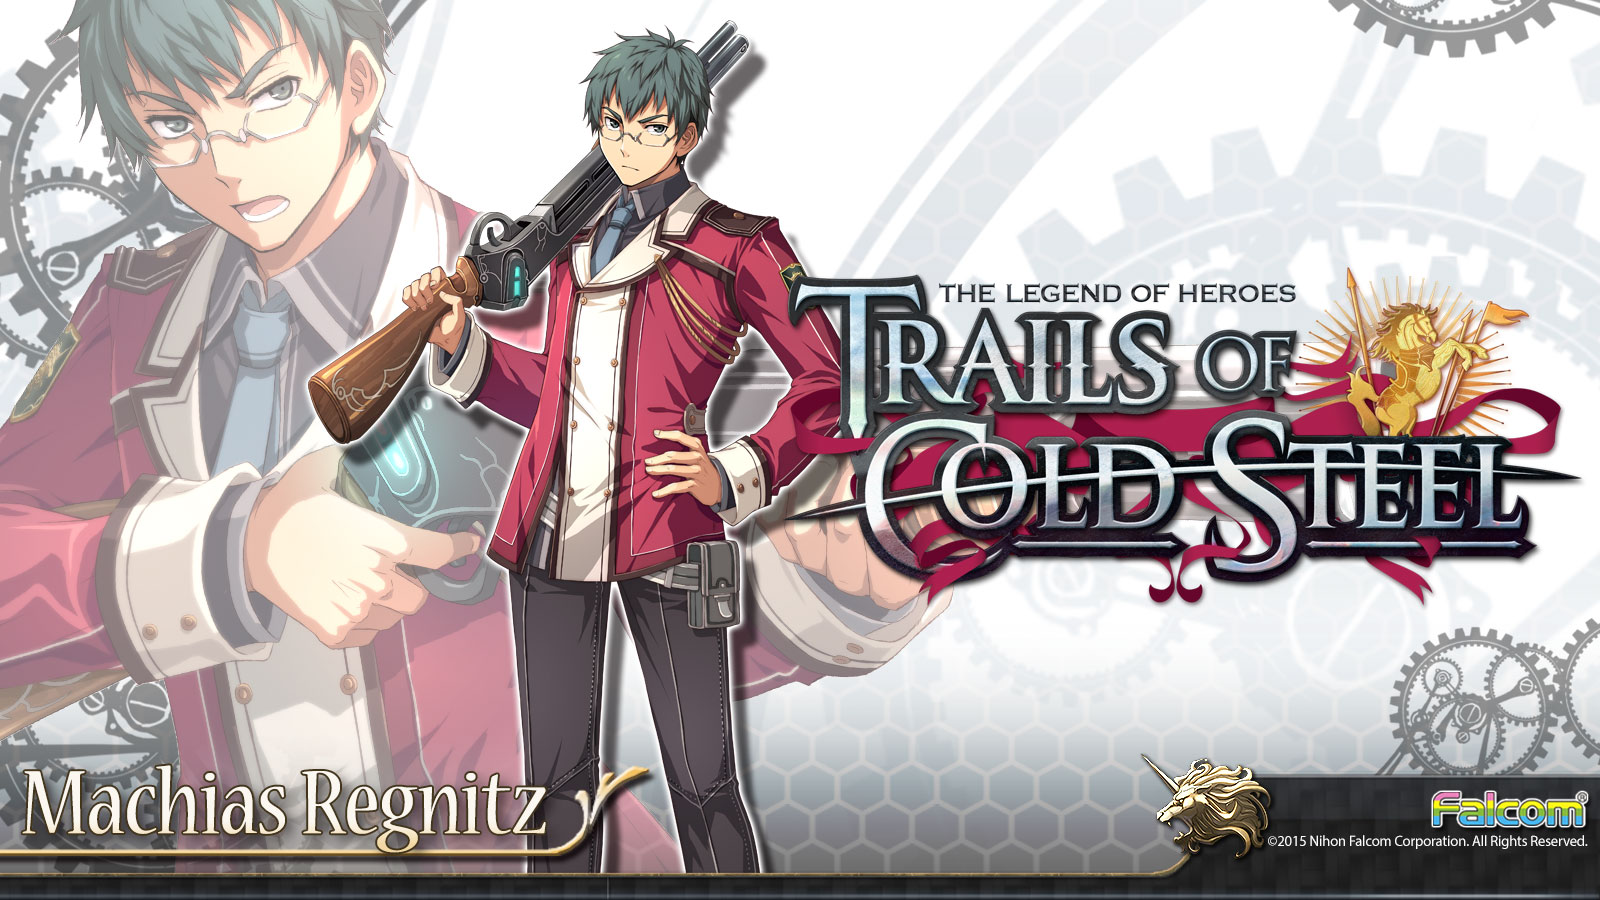 The Legend Of Heroes Trails Of Cold Steel Wallpaper 005 Machias